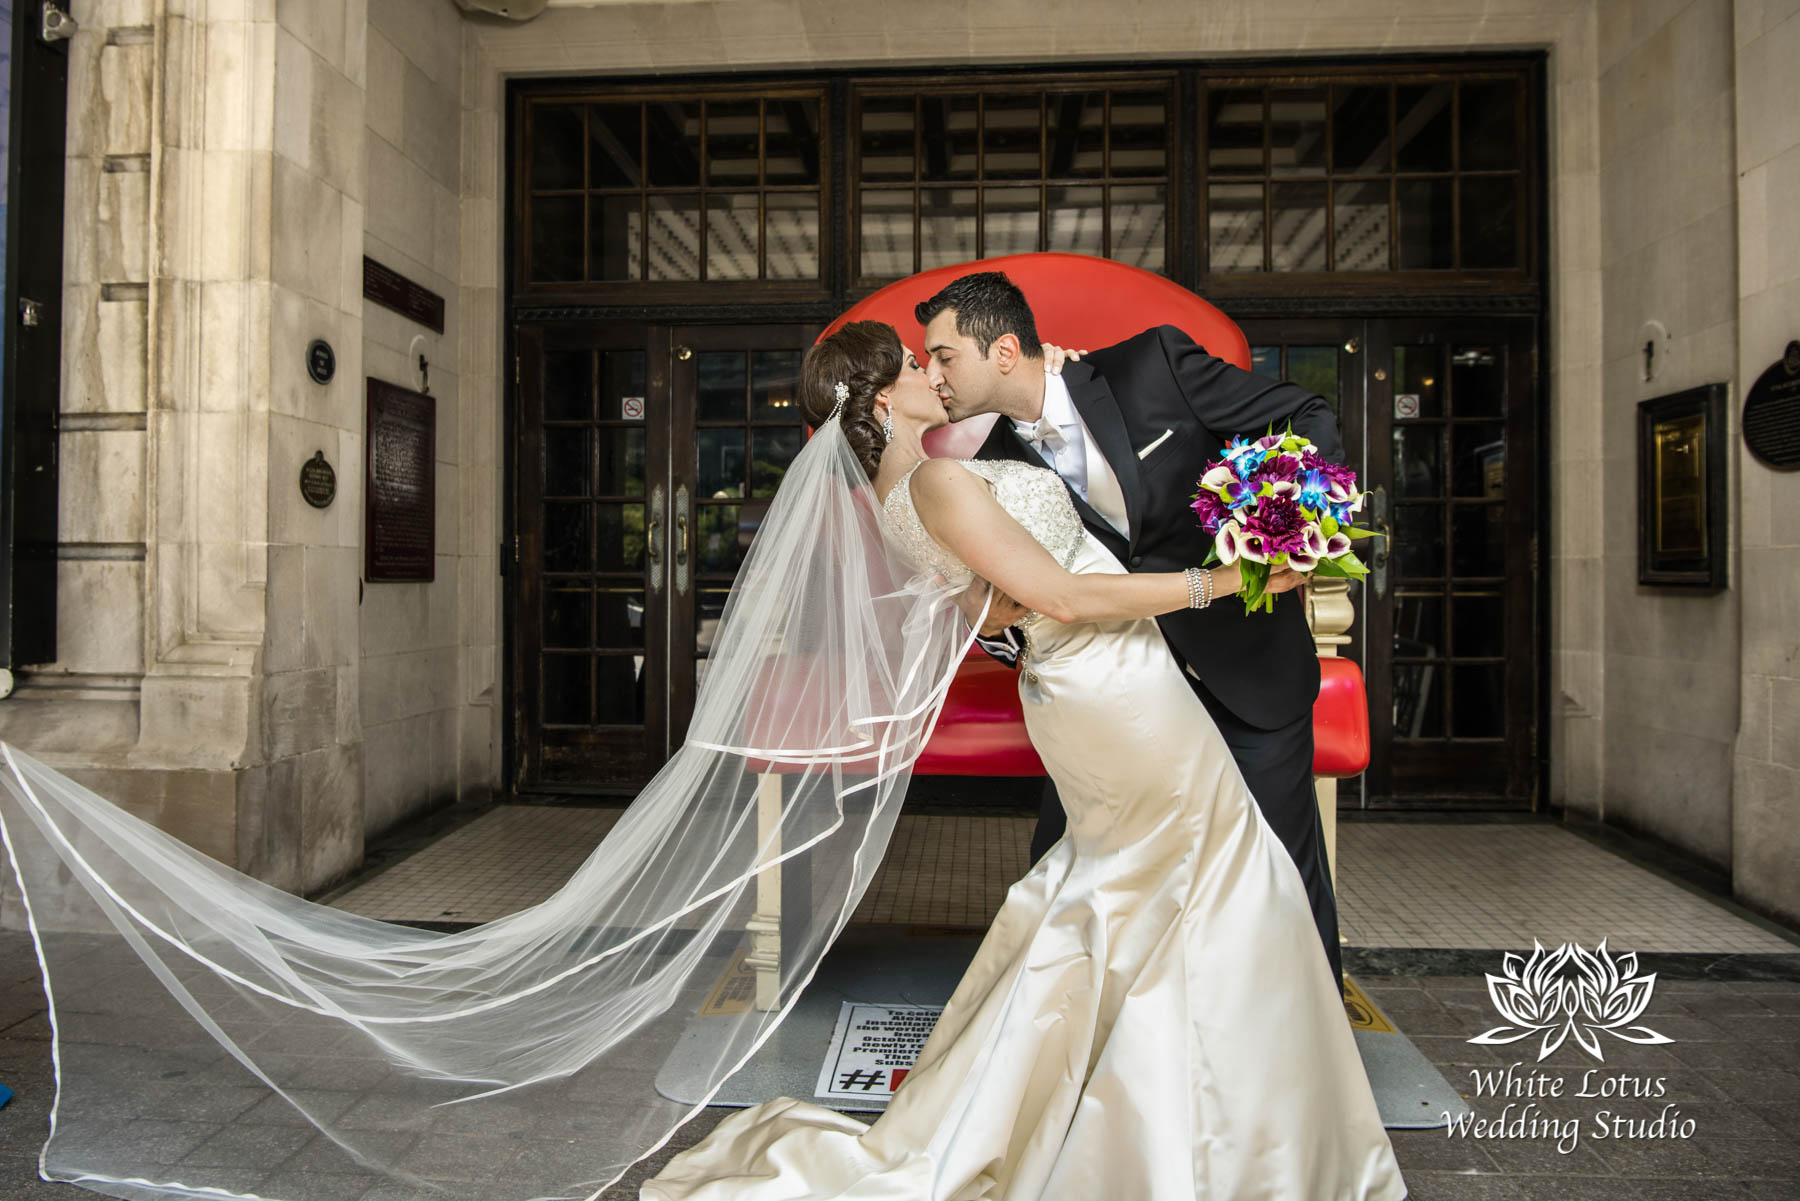 070 - Wedding - Toronto - Downtown wedding photo-walk - PW